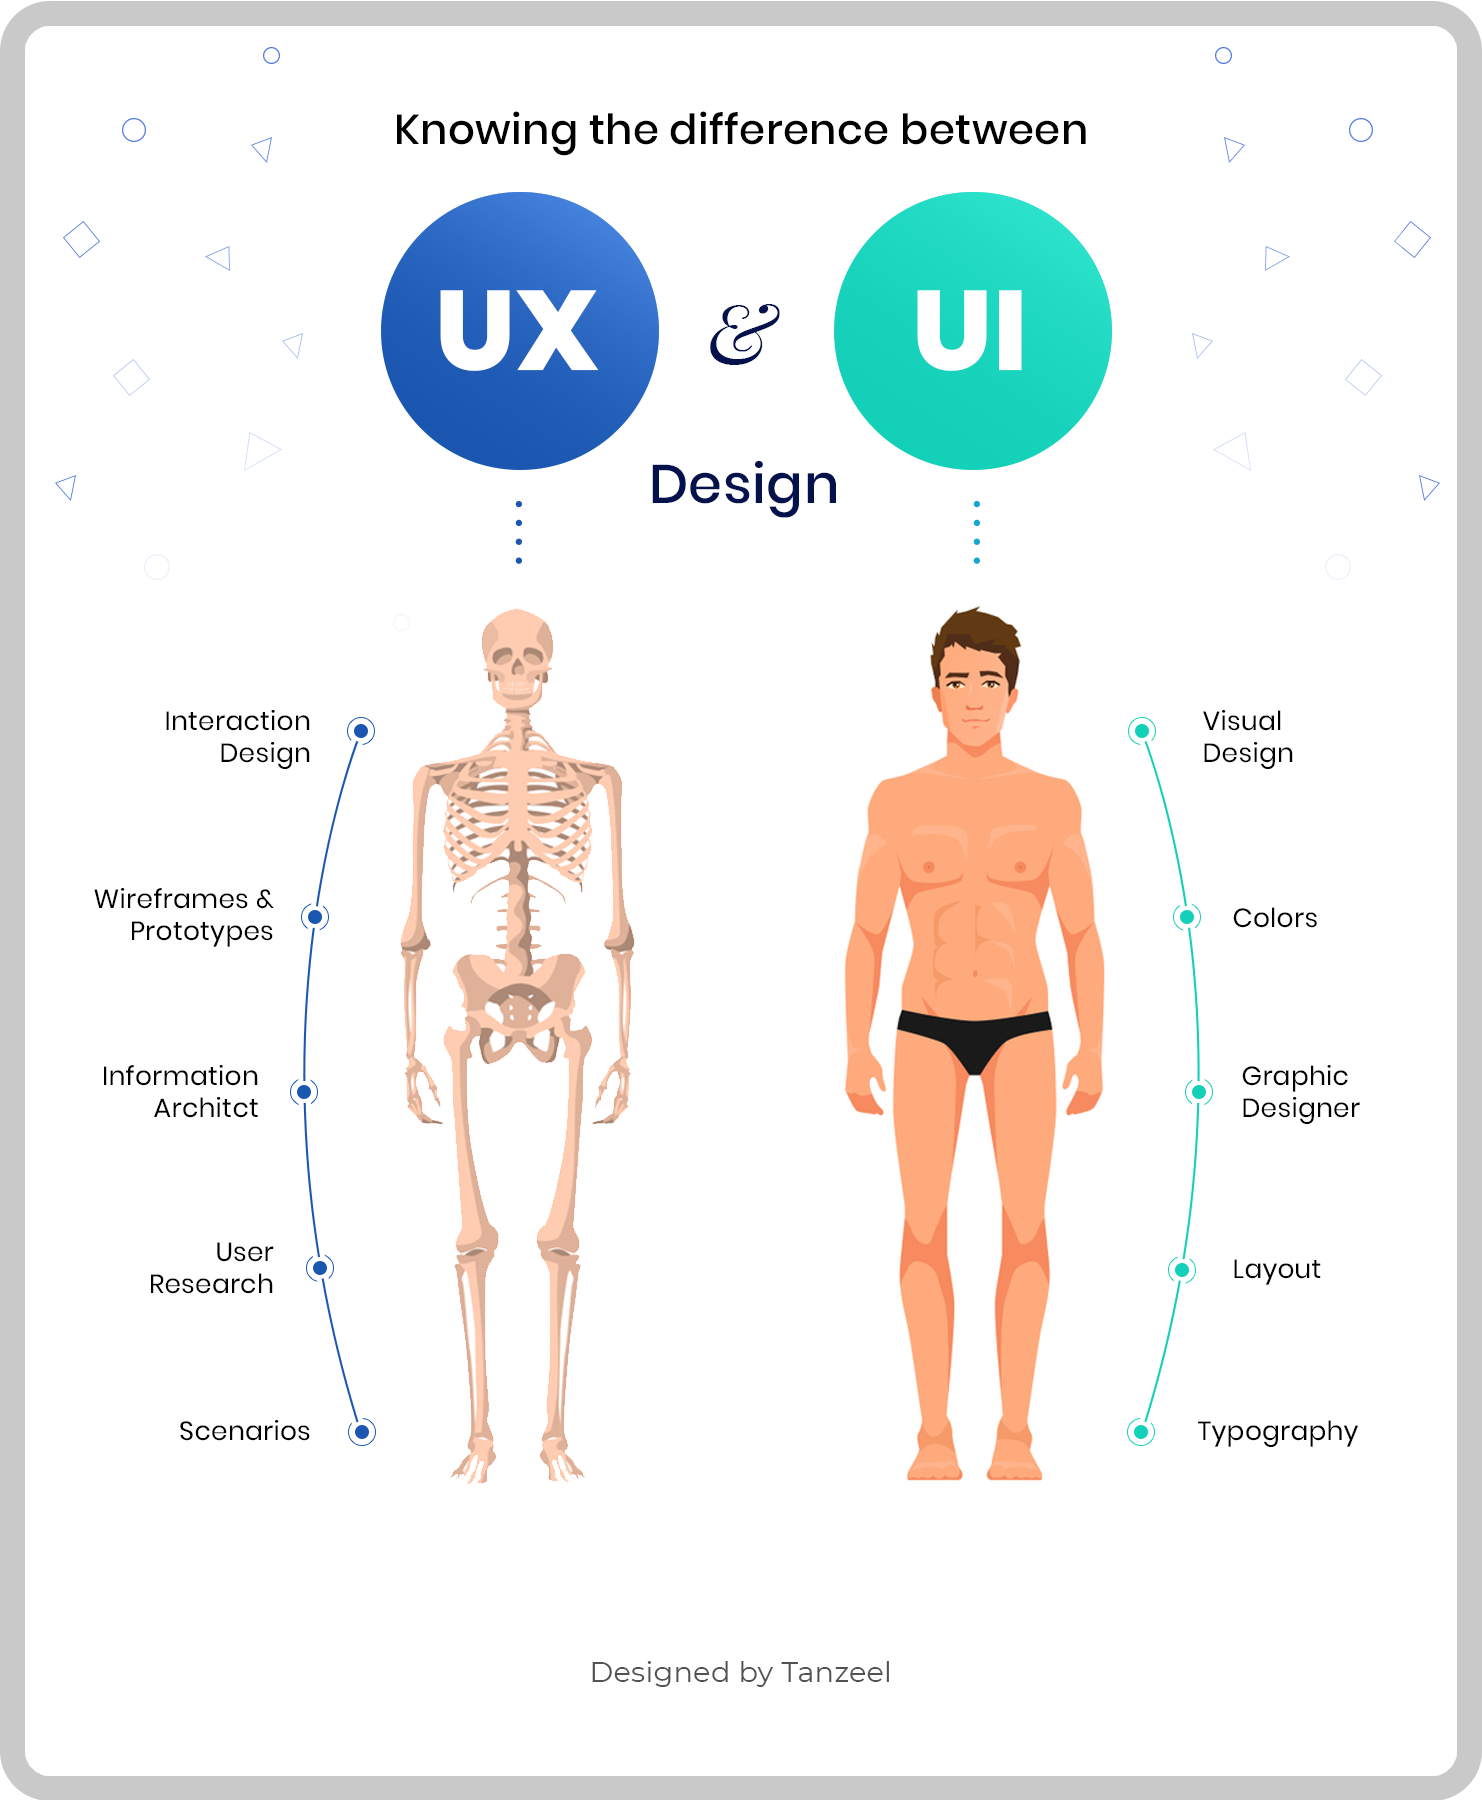 UI vs UX Design - What's the difference (Infographic)